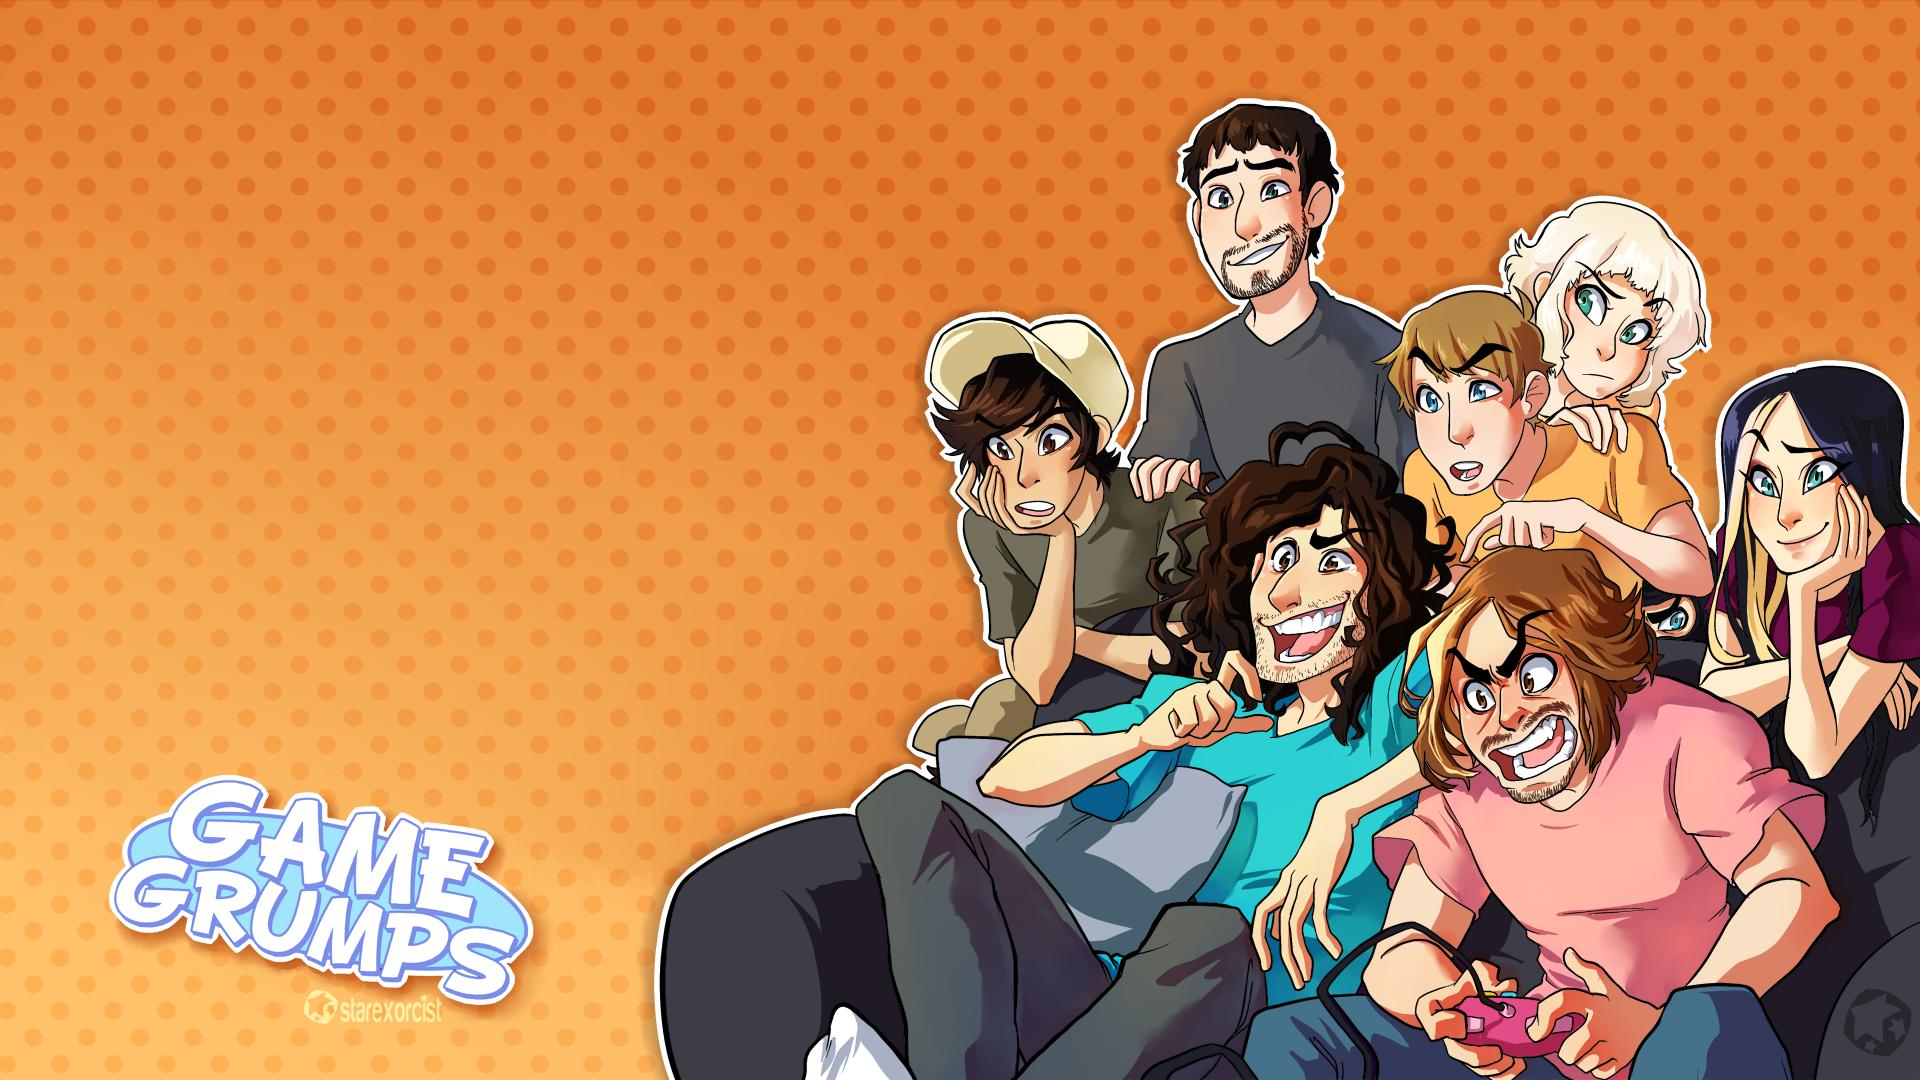 Game Grumps Wallpaper